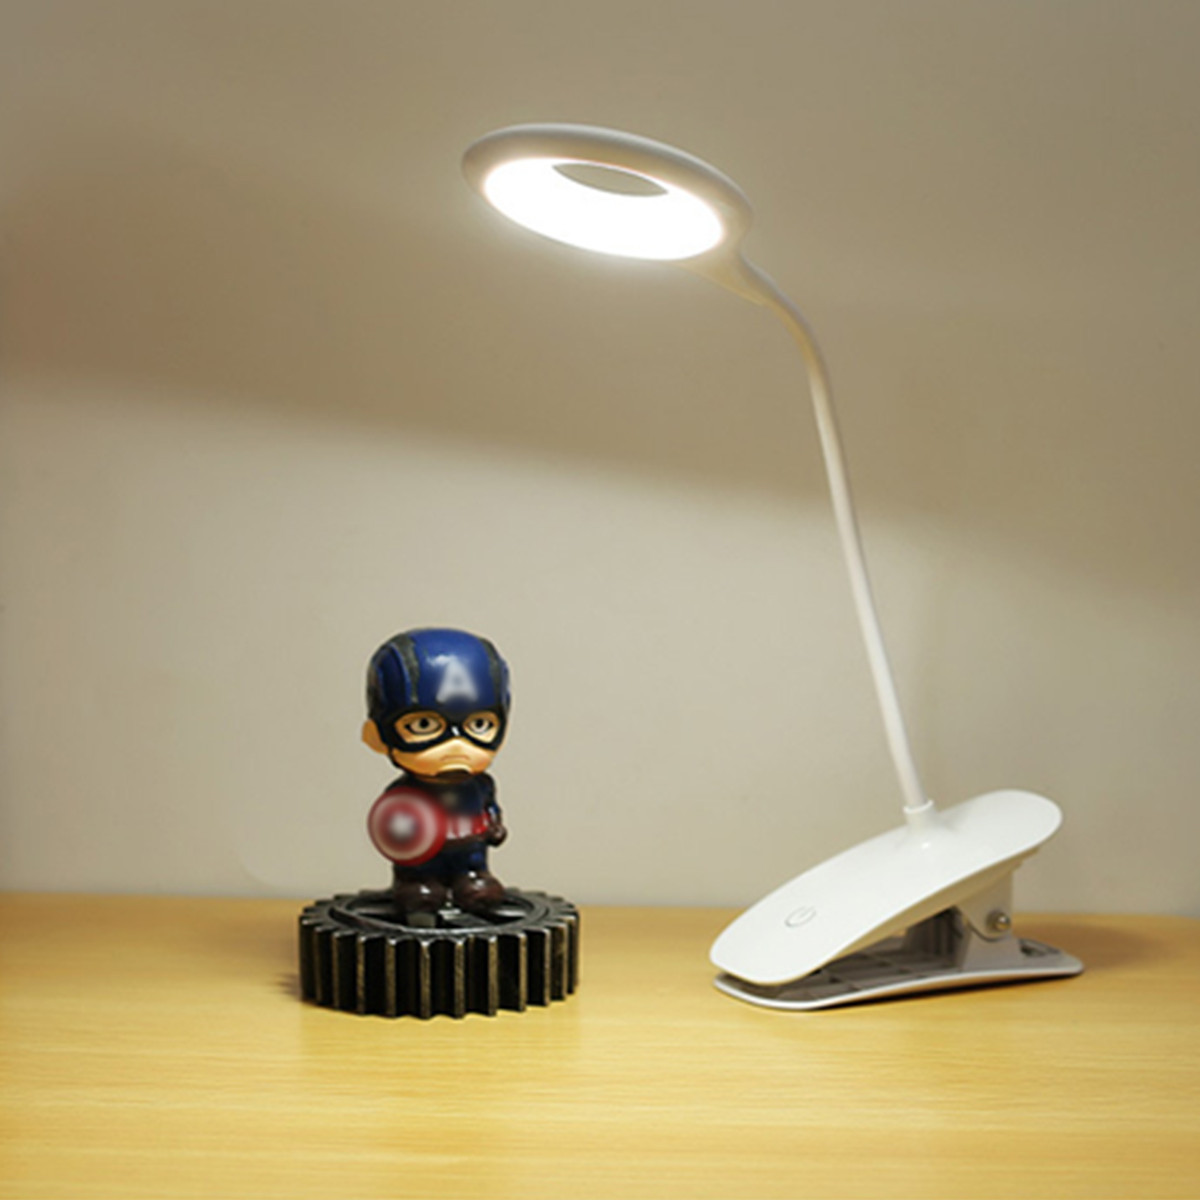 Clip On Bed Lamp Details About Portable Rechargeable Led Lights Flexible Clip On Bed Desk Table Reading Lamp